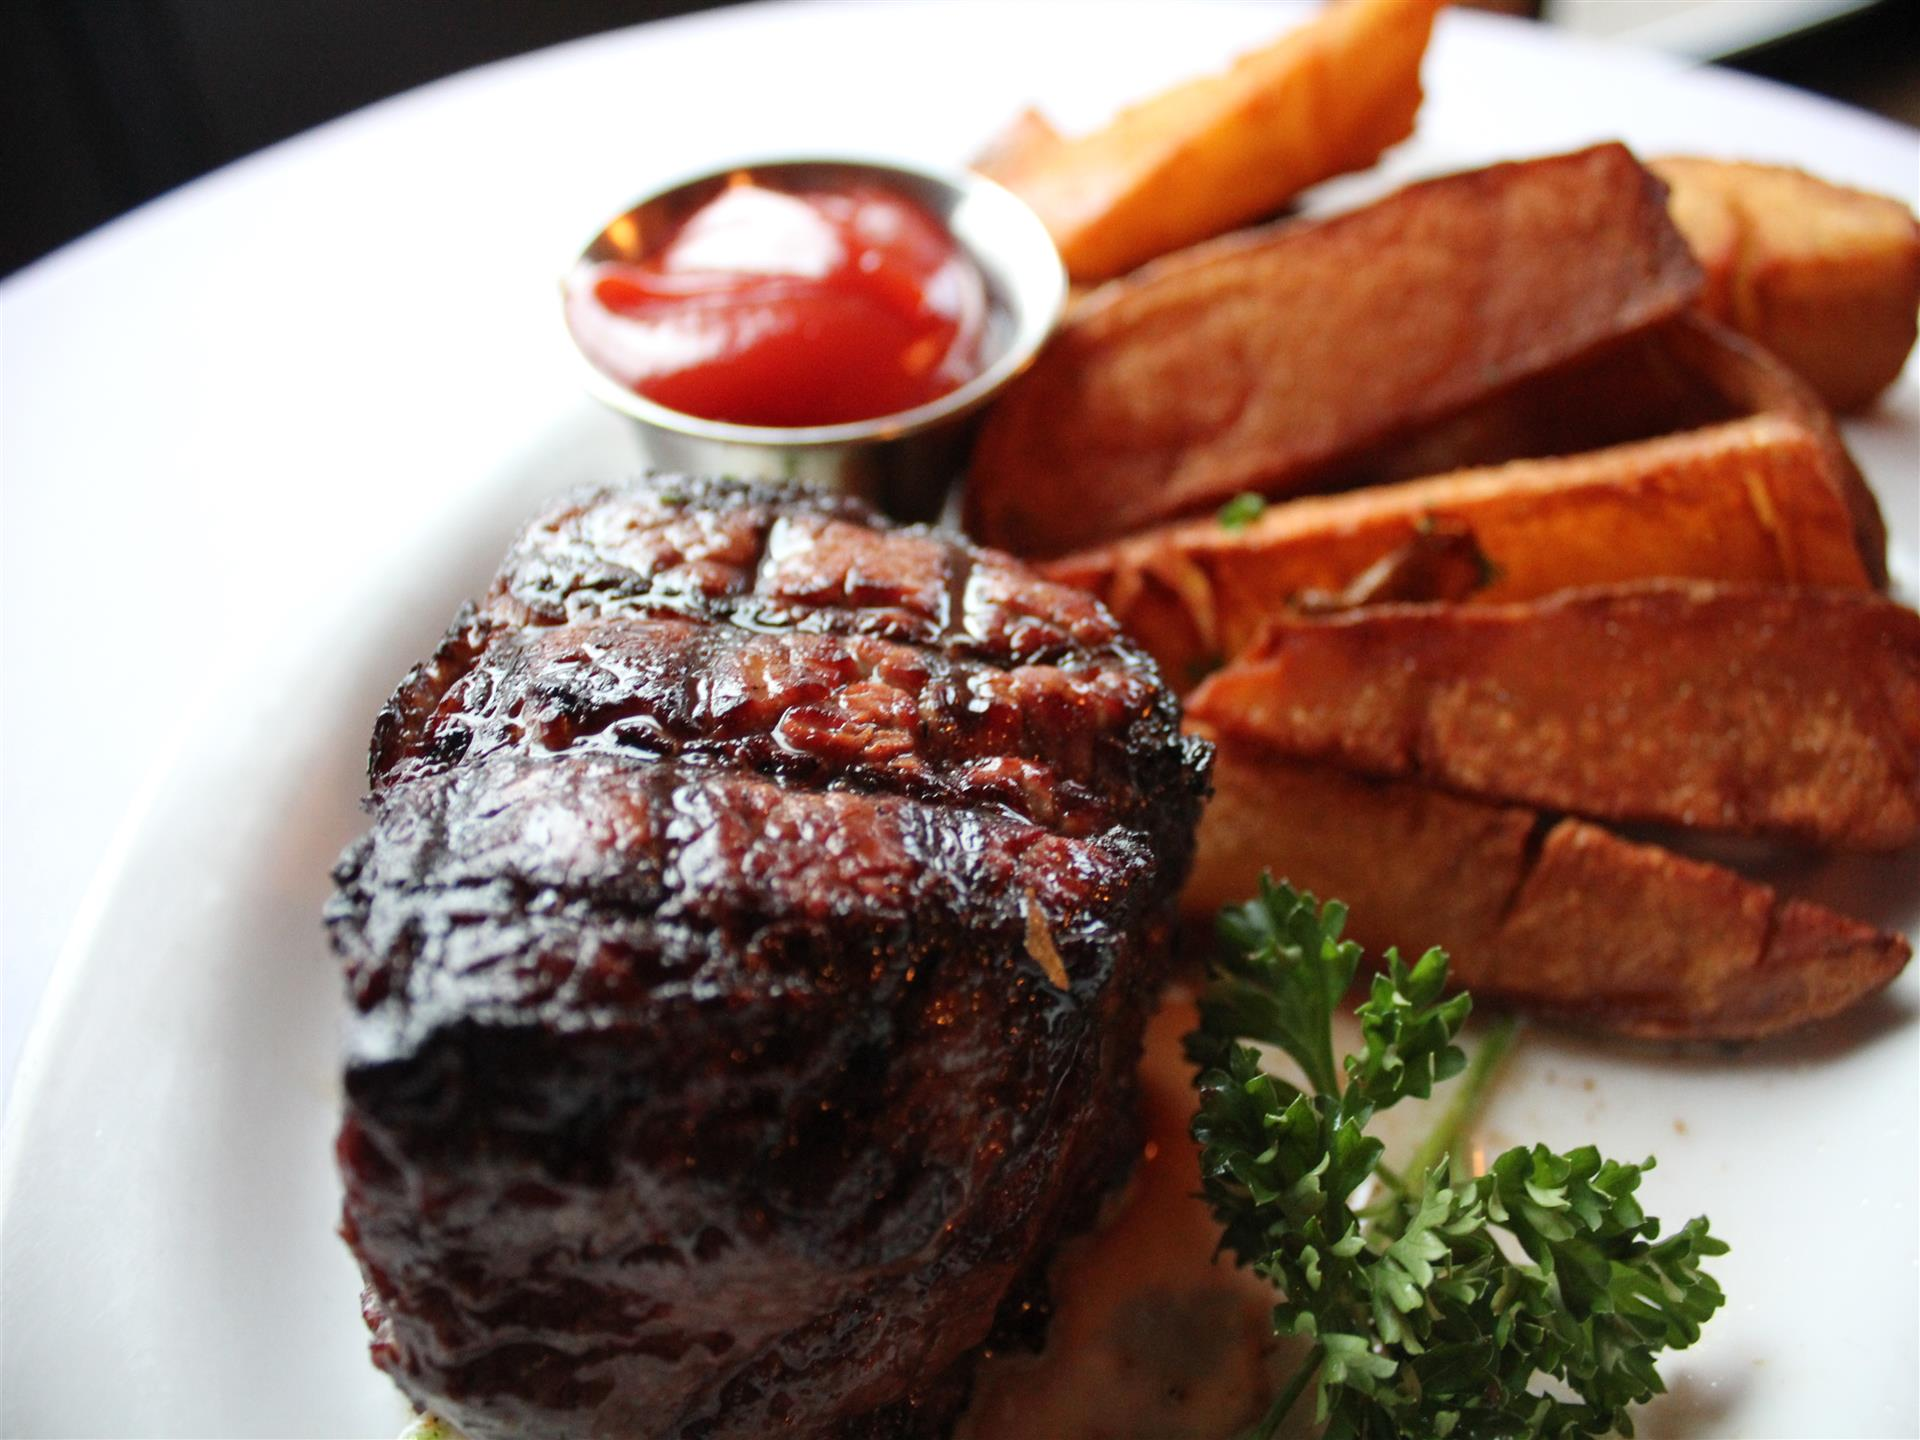 Steak and fries on white plate